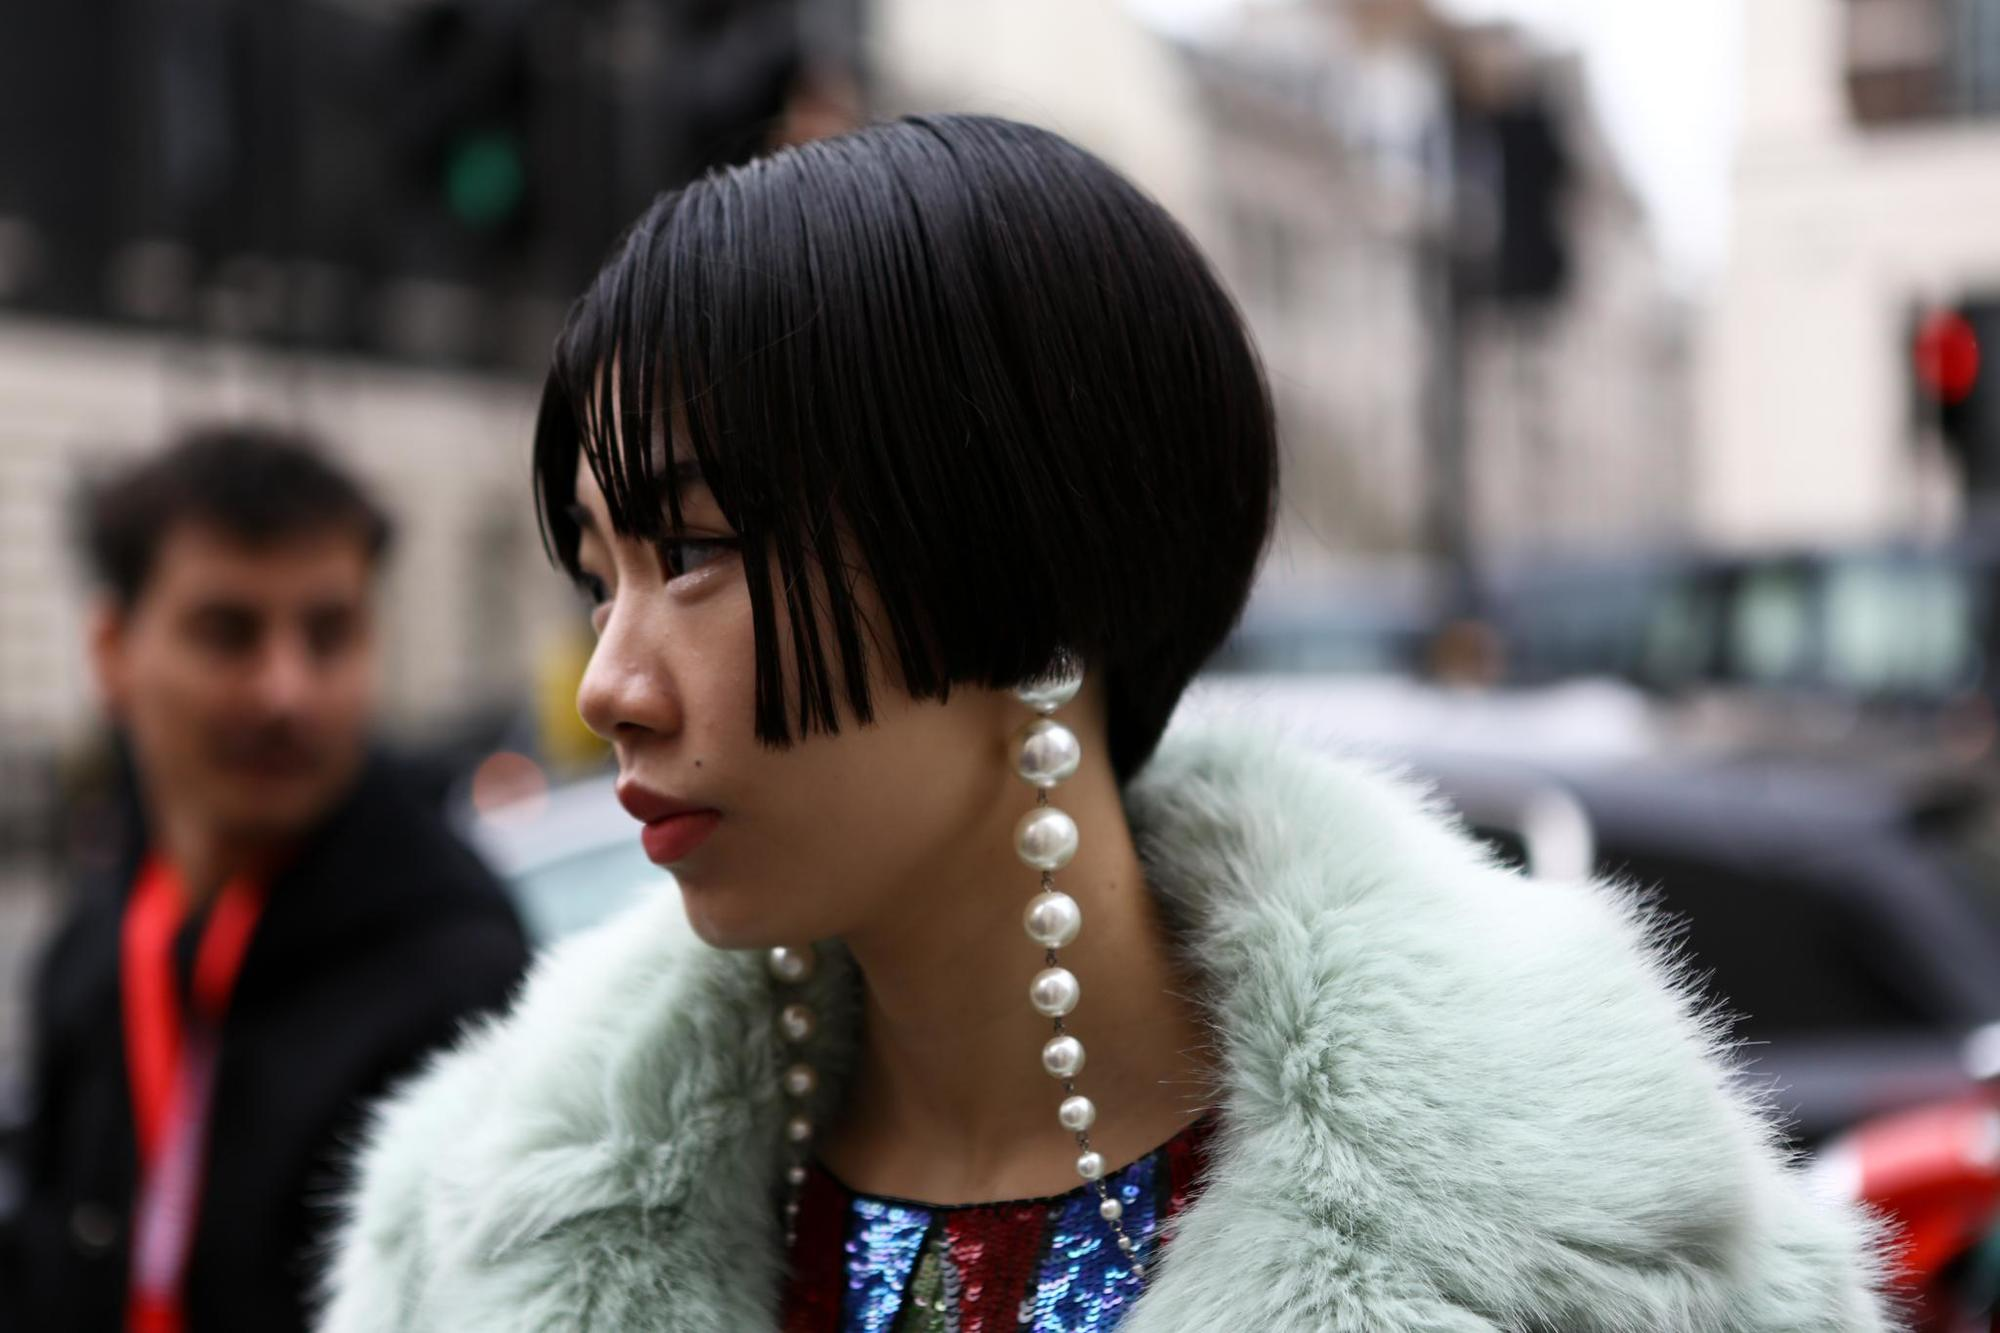 Haircuts For Fine Straight Hair: 15 Looks From The Street